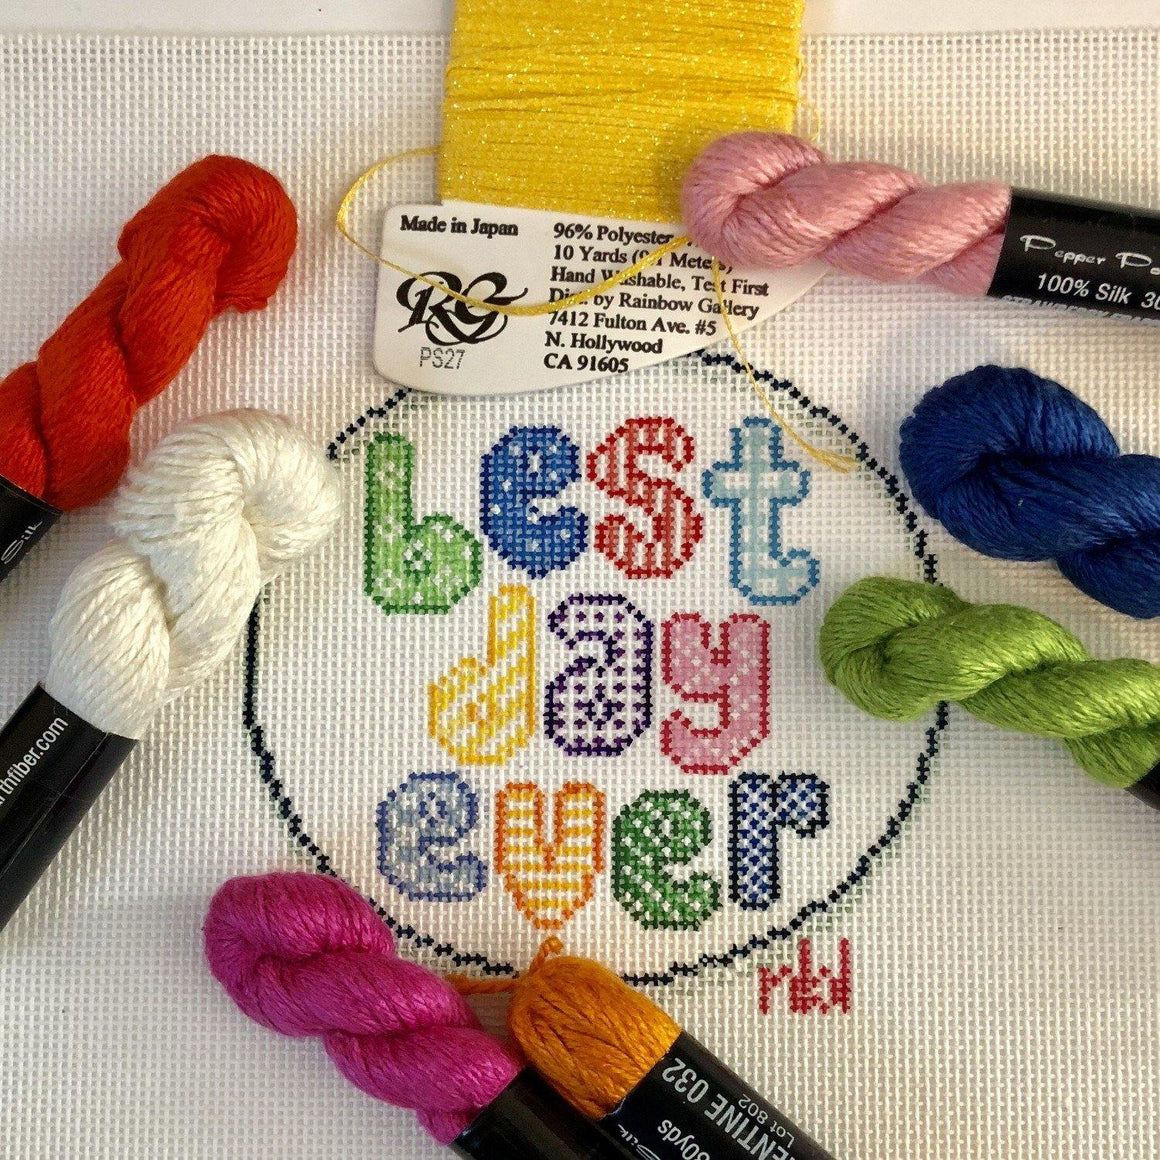 Best Day Ever Needlepoint Canvas - Needlepoint by Laura, LLC